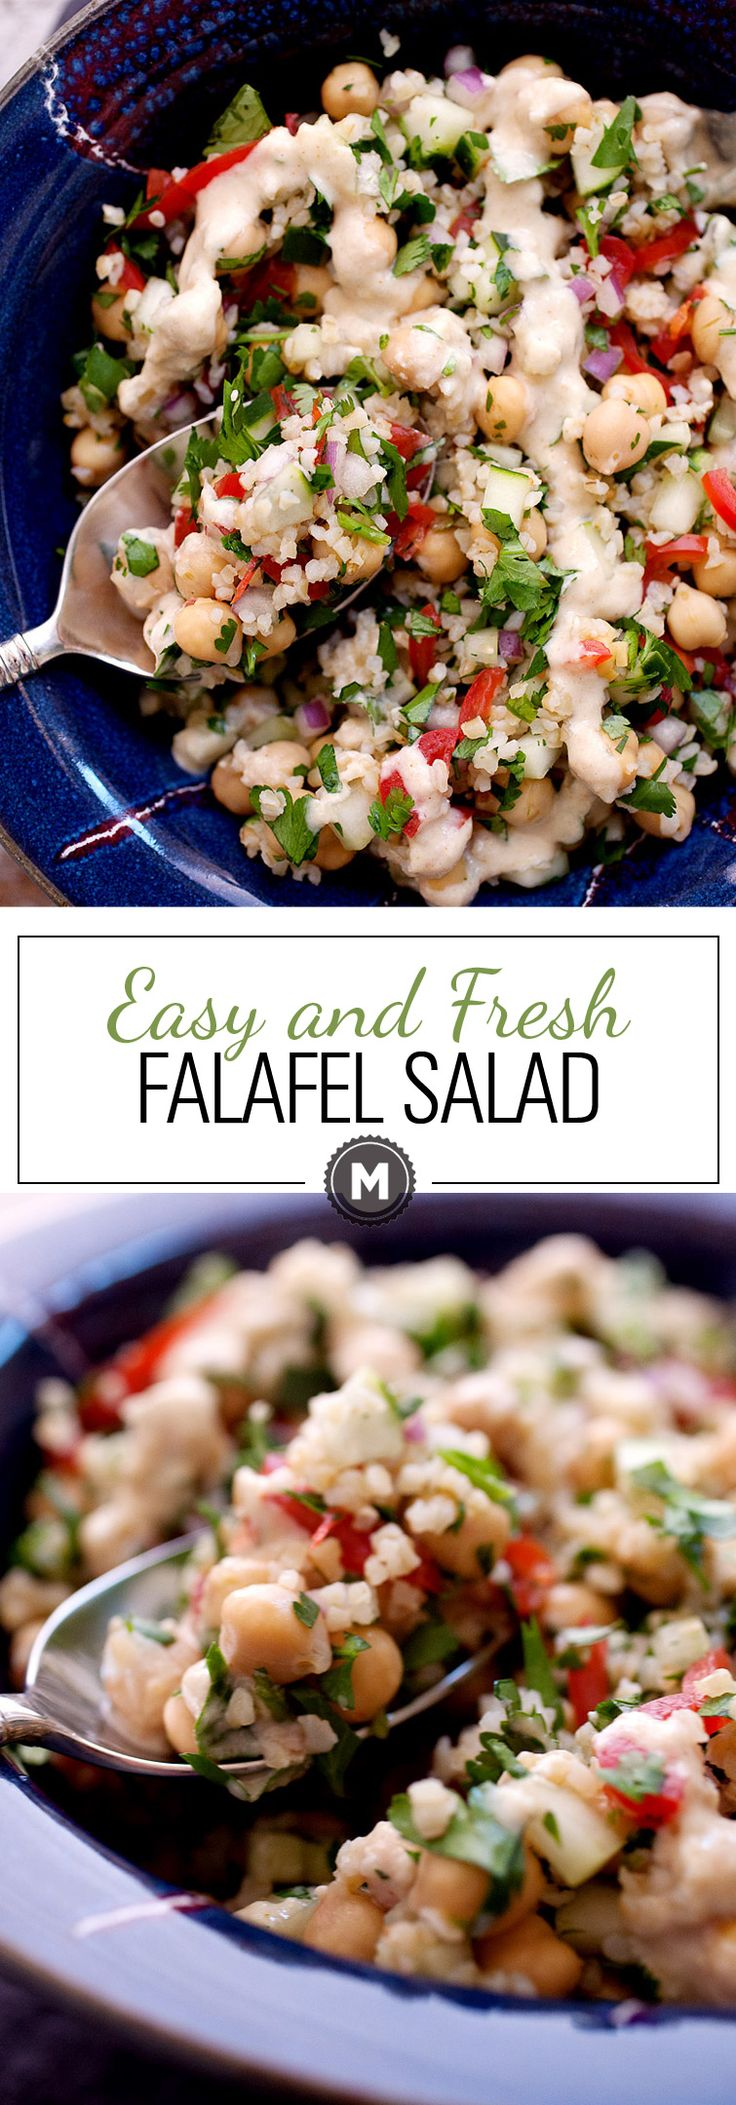 Easy and Fresh Falafel Salad: All the ingredients of a traditional falafel tossed in a quick and fresh salad! Chickpeas, bulgar, loads of herbs, and fresh, crunchy veggies plus a simple Tahini dressing. Great side dish or light lunch! | macheesmo.com